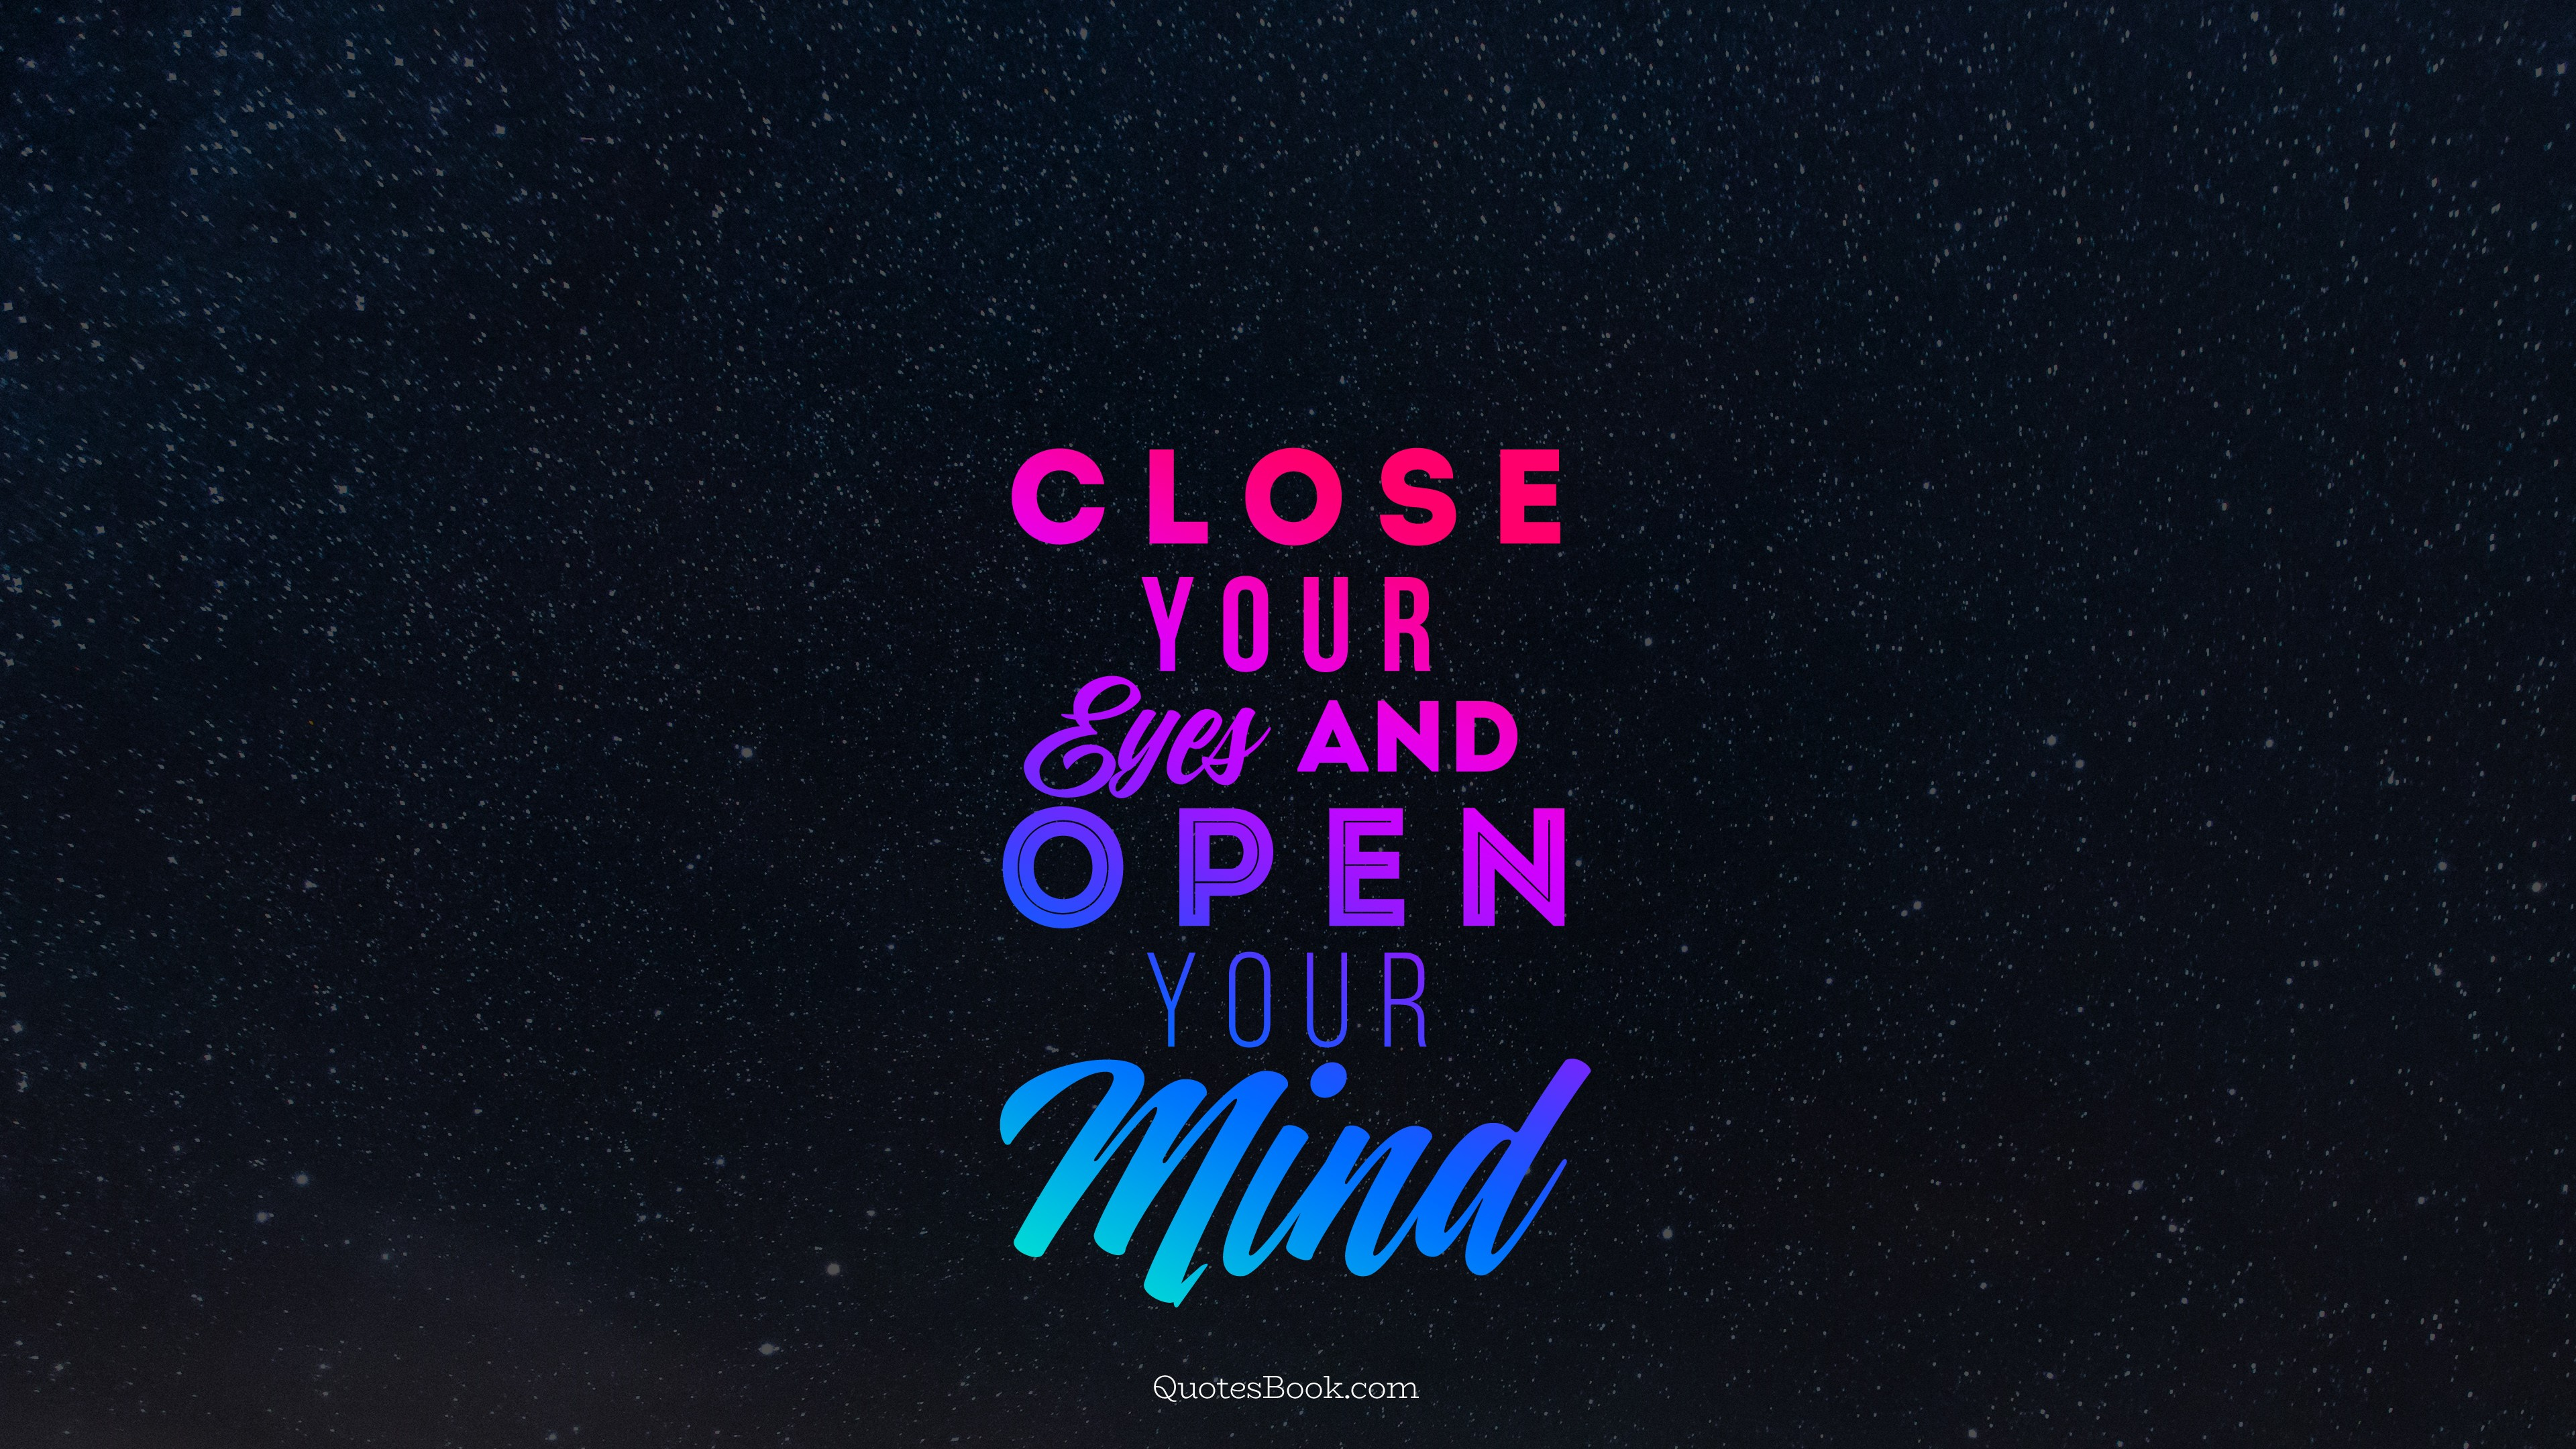 Close Your Eyes And Open Your Mind Quotesbook